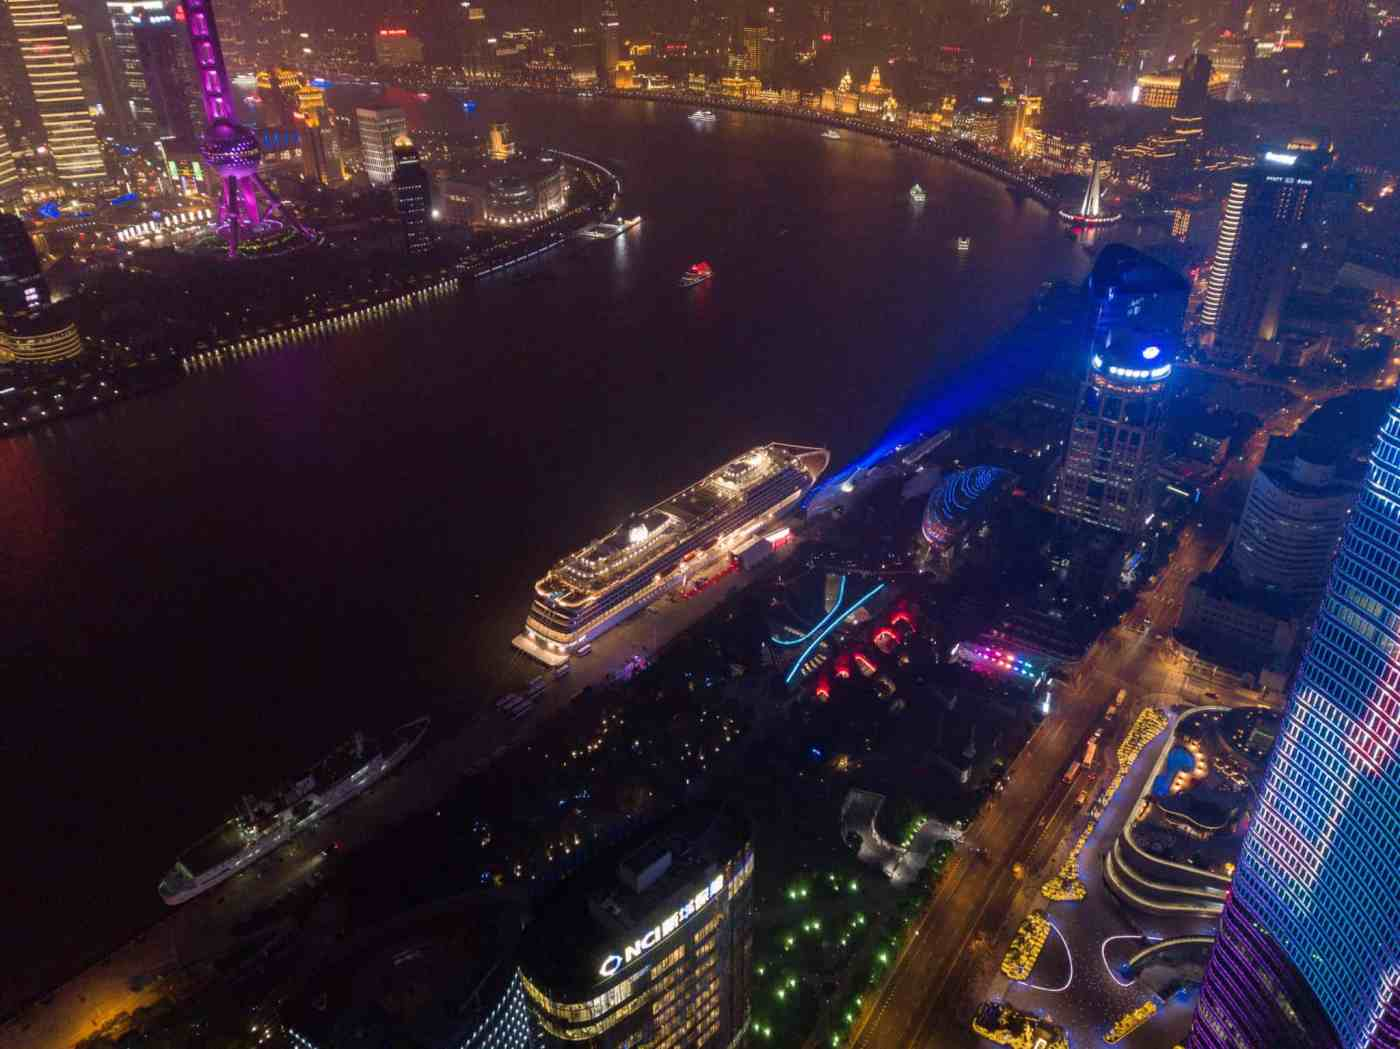 Viking Sun®, was officially named during a spectacular celebration on The Bund, in the heart of Shanghai.